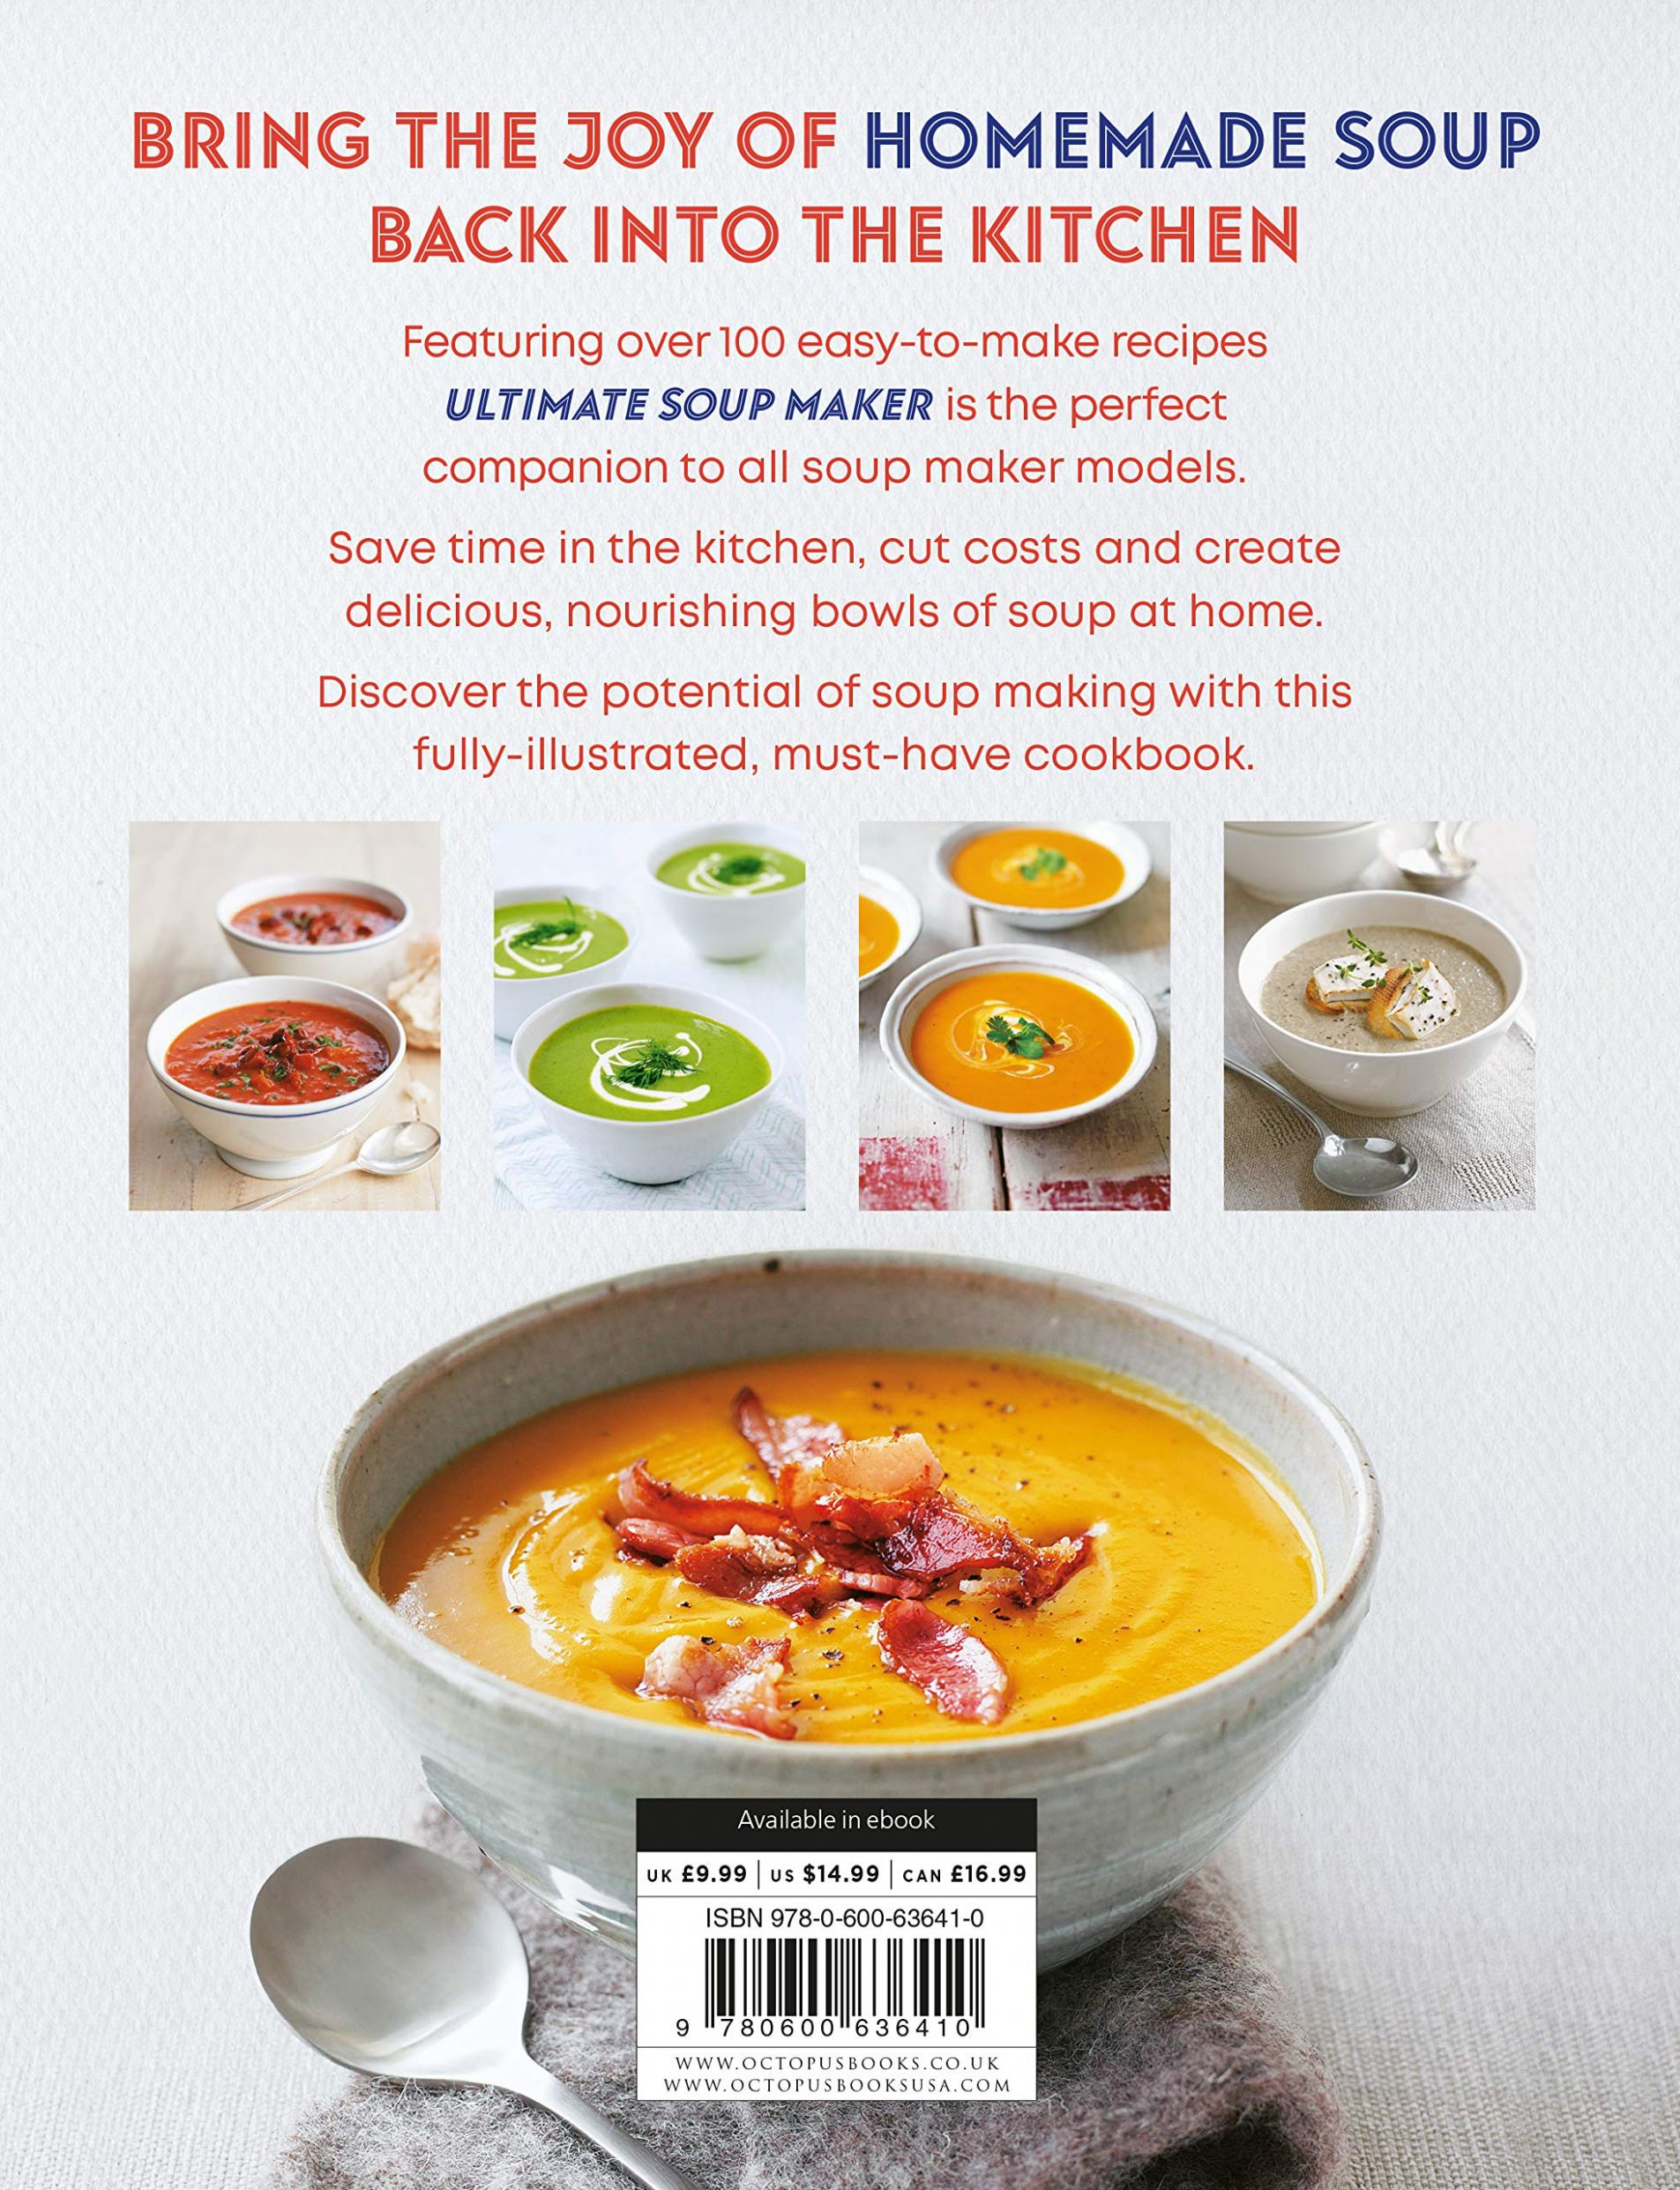 Ultimate Soup Maker: More than 9 simple, nutritious recipes ...